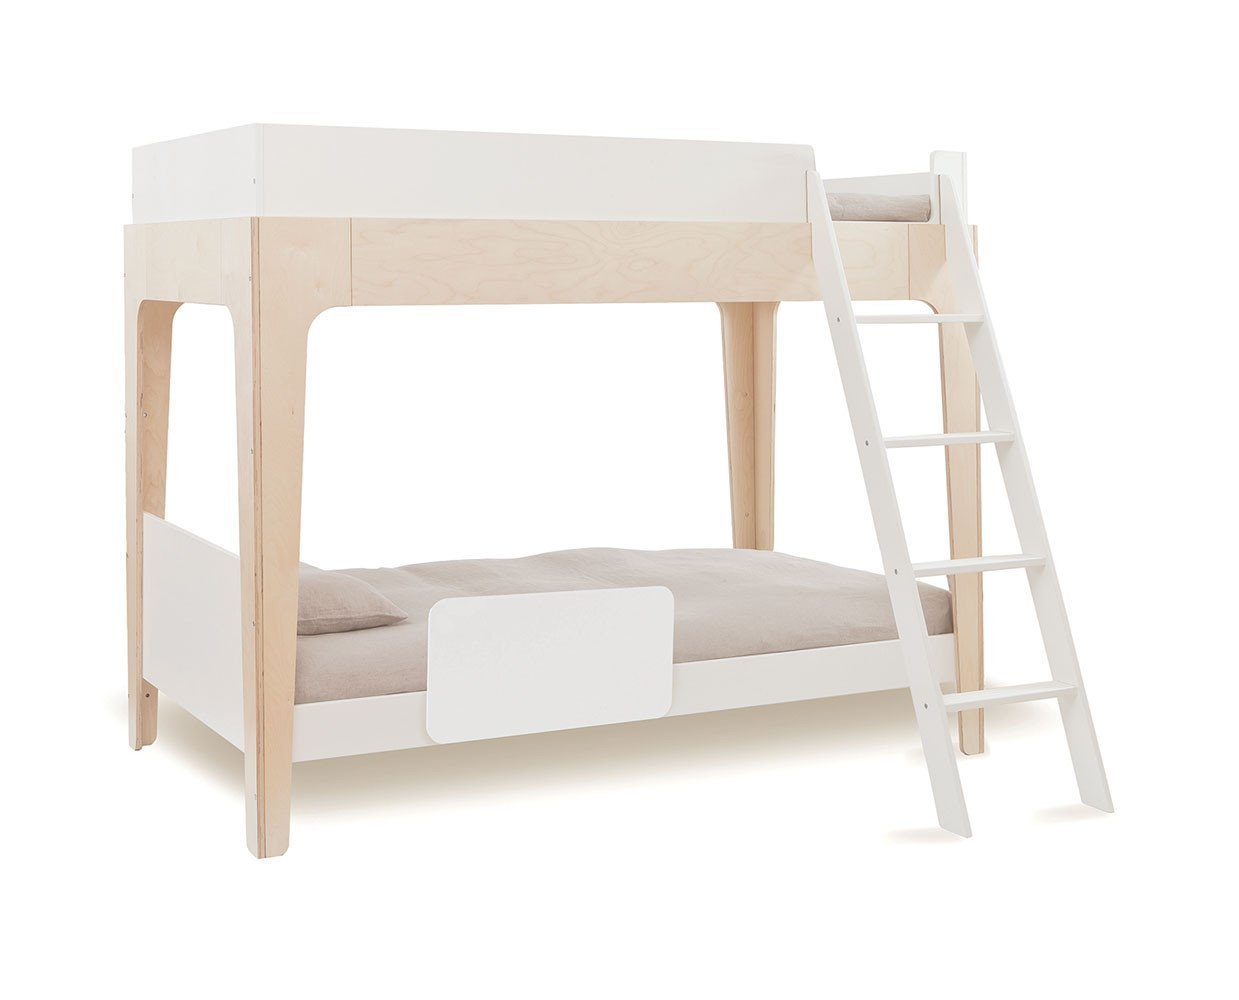 Perch Twin Bunk Bed - Birch - Scandinavian Designs